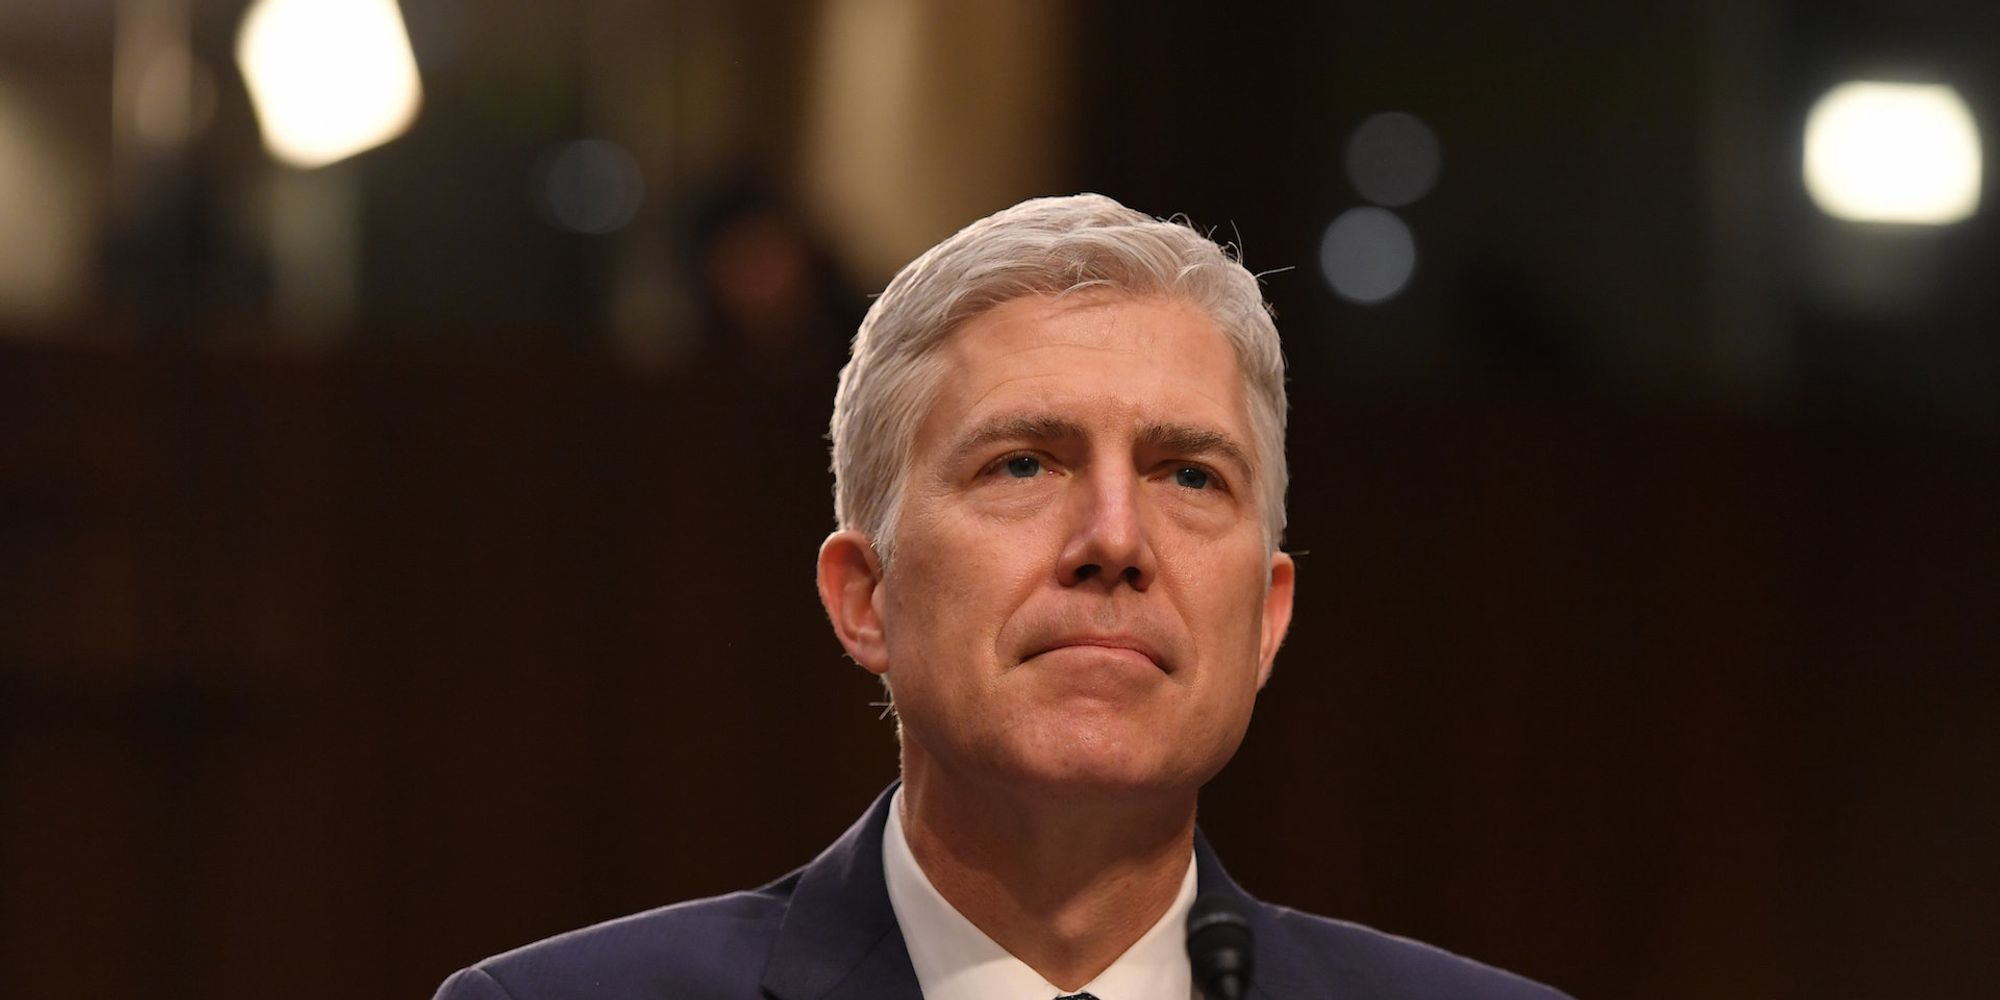 What Should Democrats Do About Gorsuch?